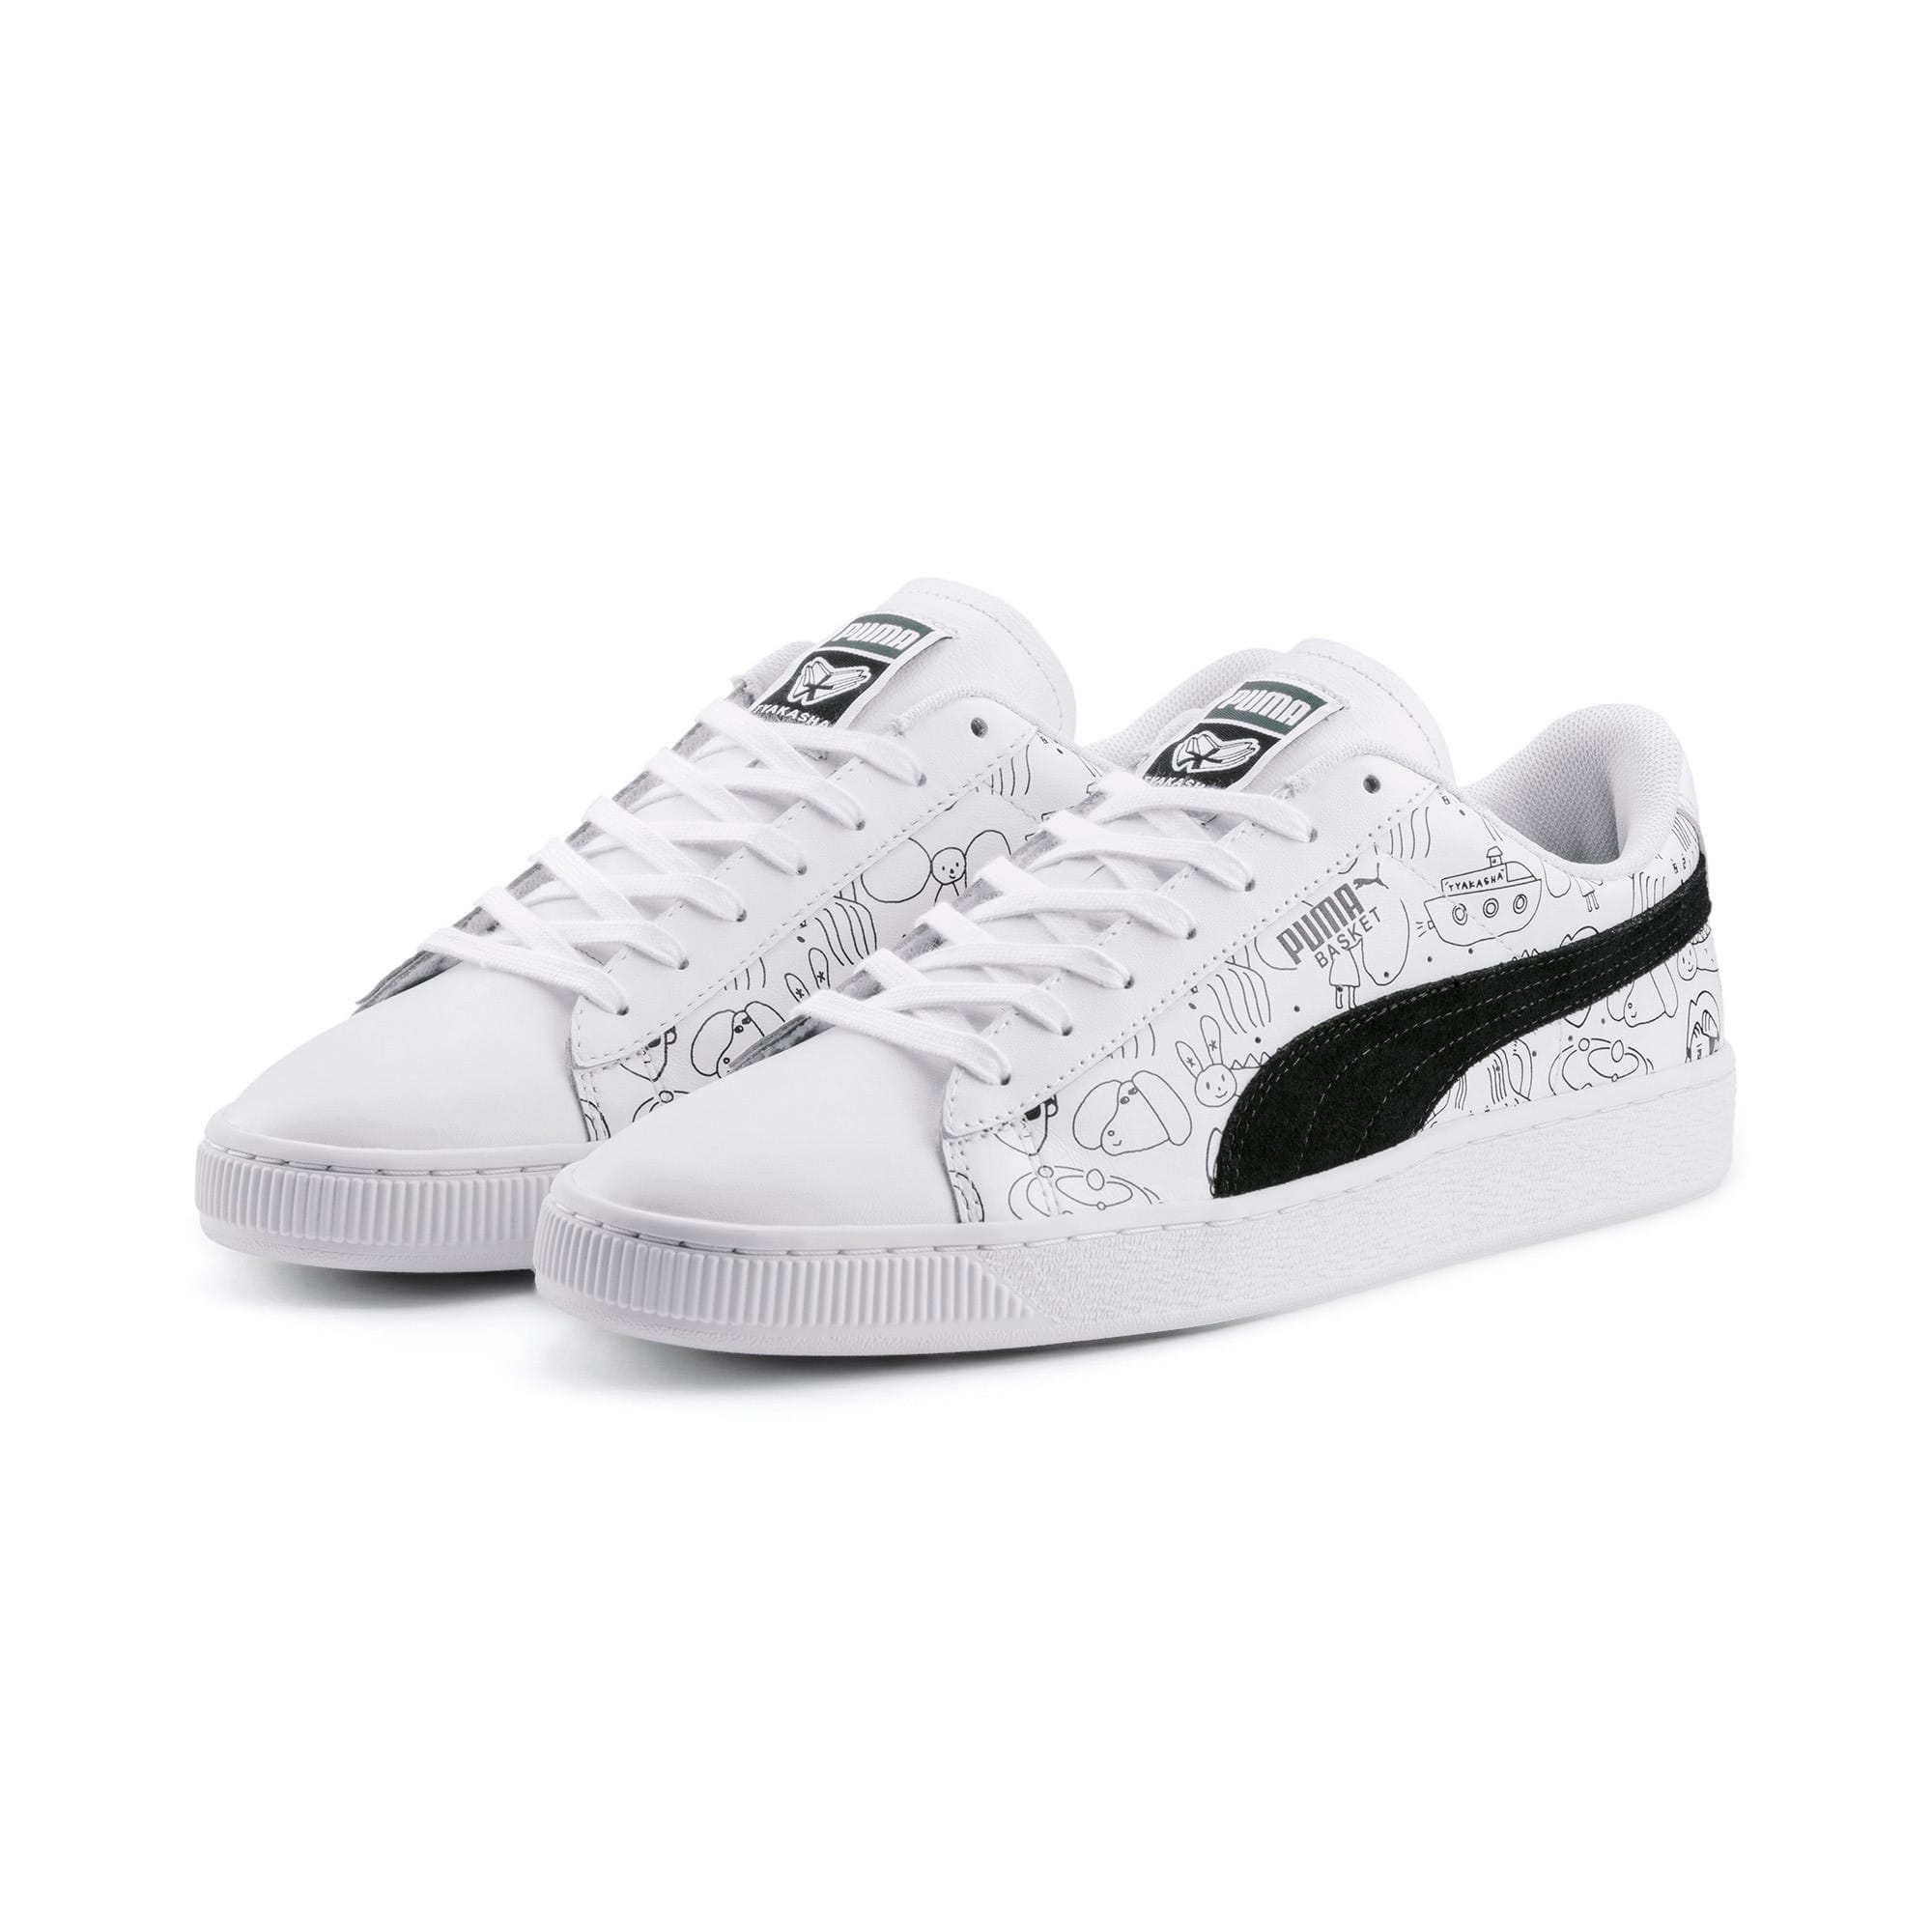 Thumbnail 2 of PUMA x TYAKASHA バスケット スニーカー, Puma White-Puma Black, medium-JPN